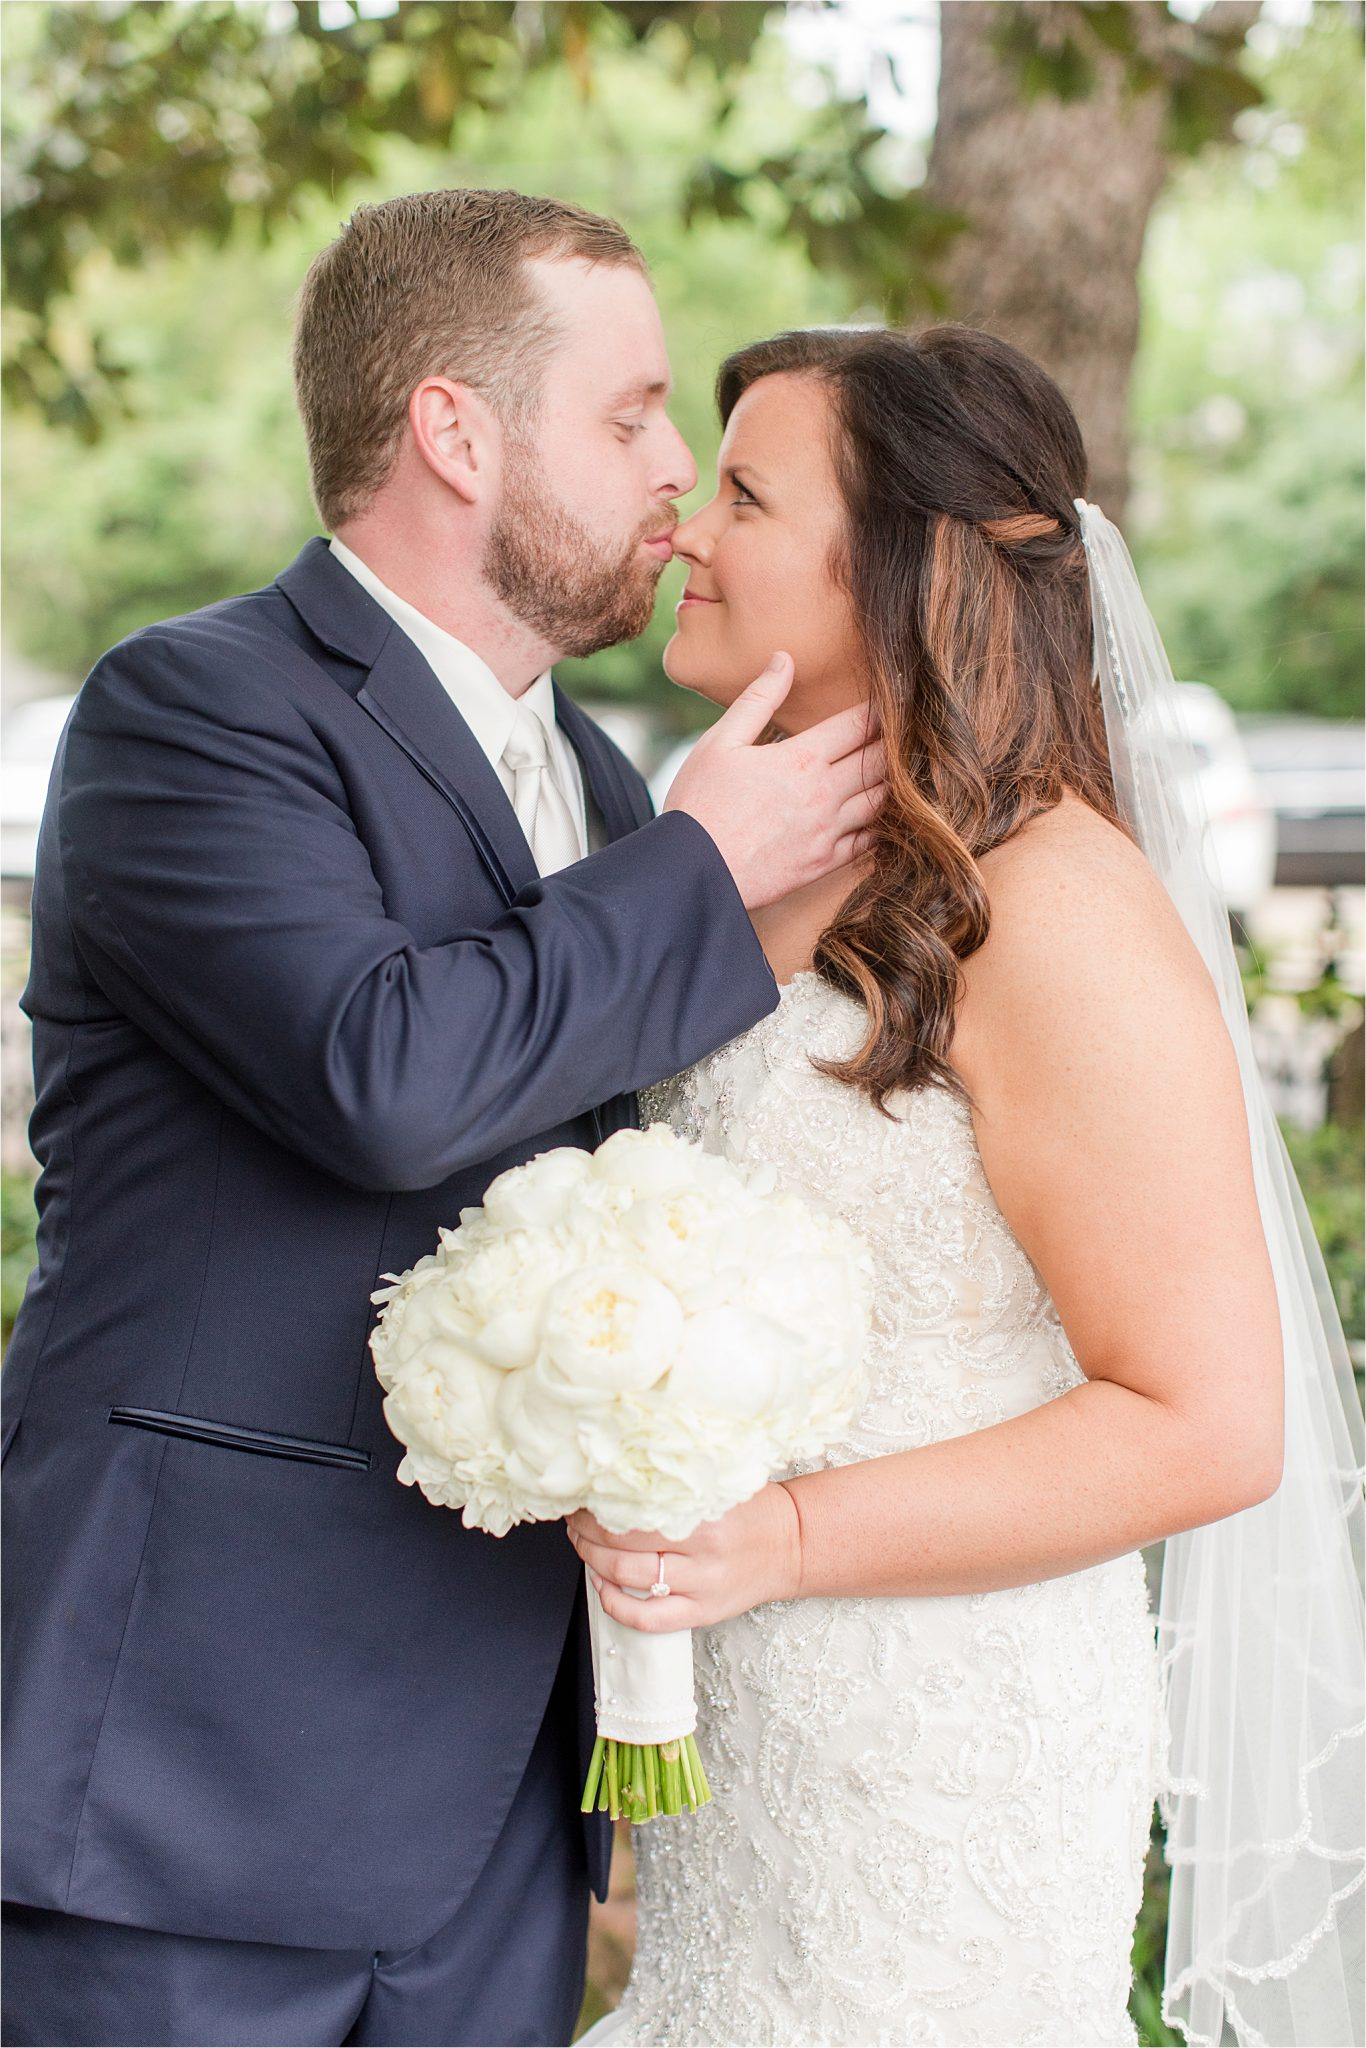 bride and groom photos-navy suit-white roses-wedding day photos-white tie-husband and wife photos-precious bride and groom photos-nose kisses